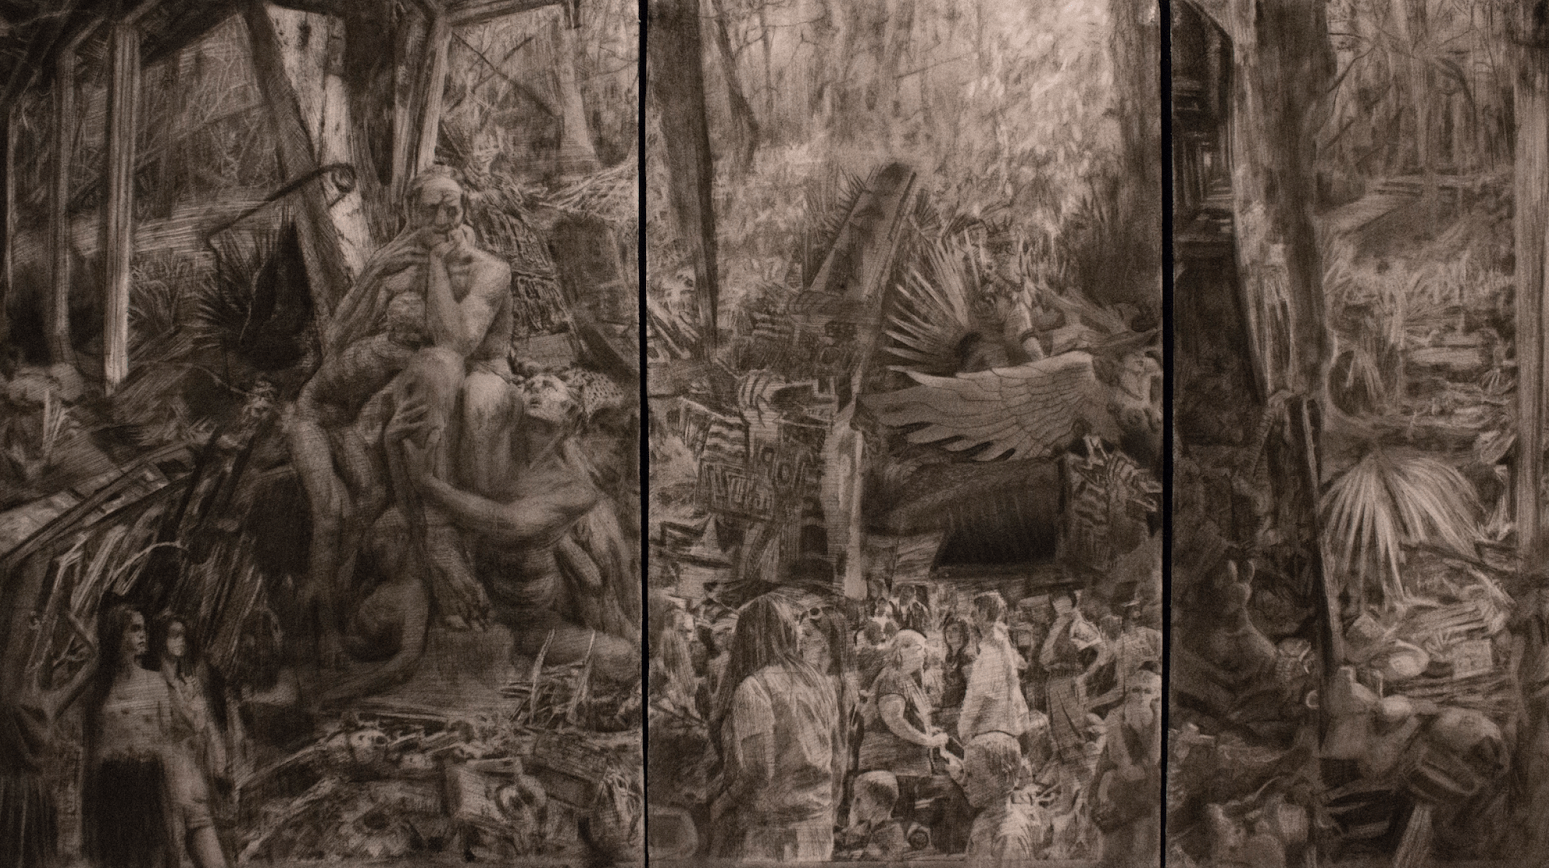 Isaac McCaslin, Garden of delightful Objects Triptych, Charcoal on Paper 31 x 17 in, on canvas, 2014